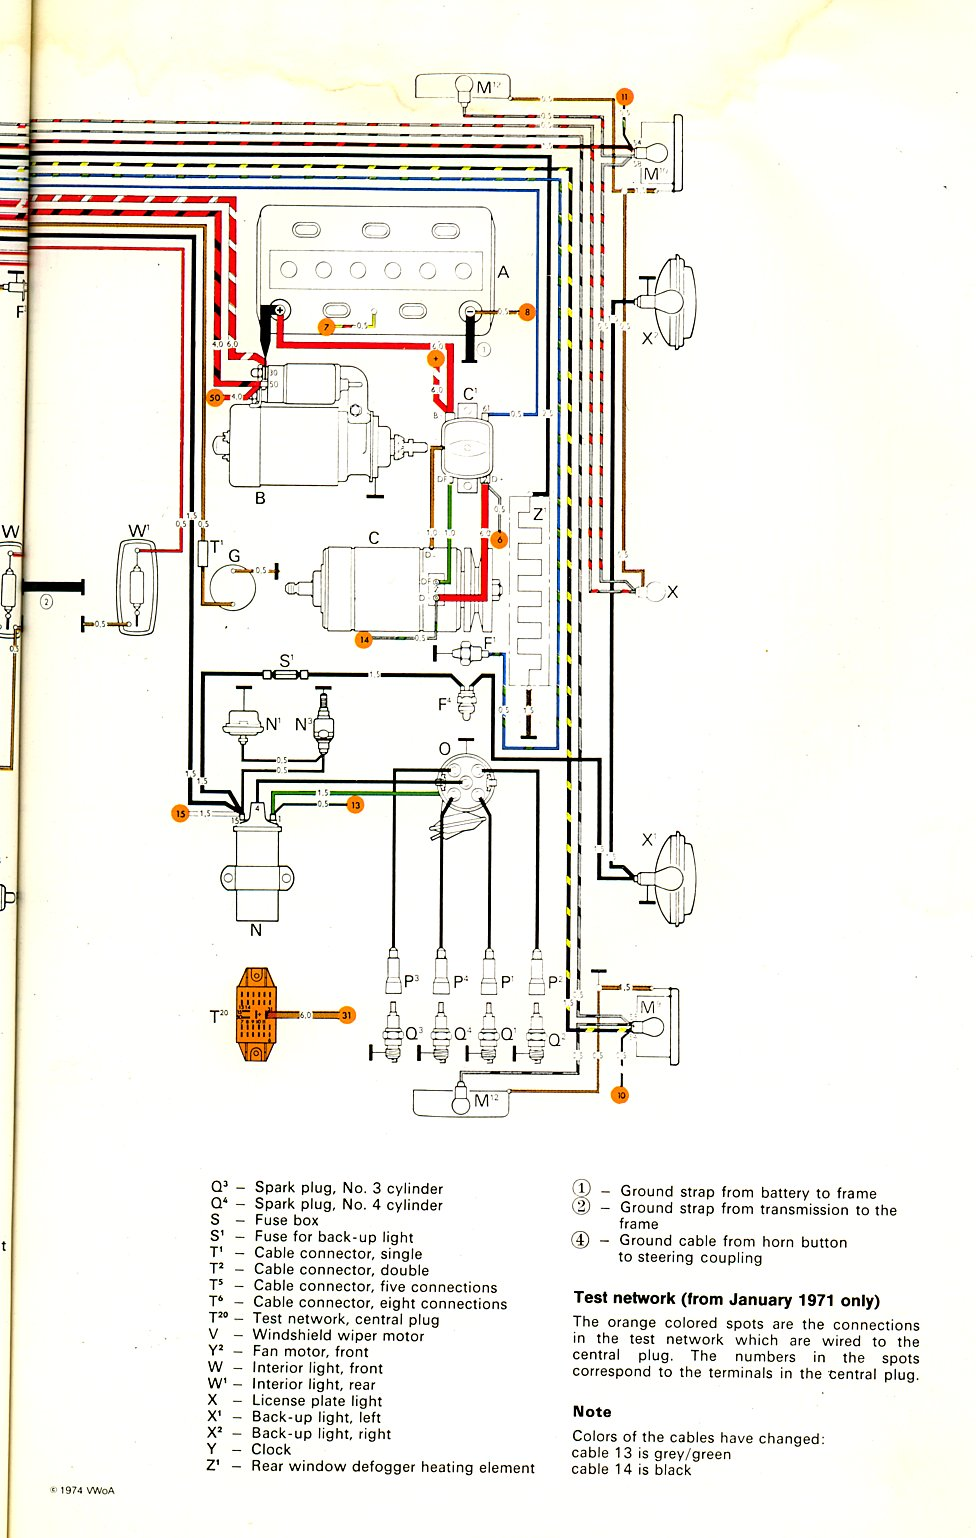 Type 2 Wiring Diagrams 1980 Club Car Diagram